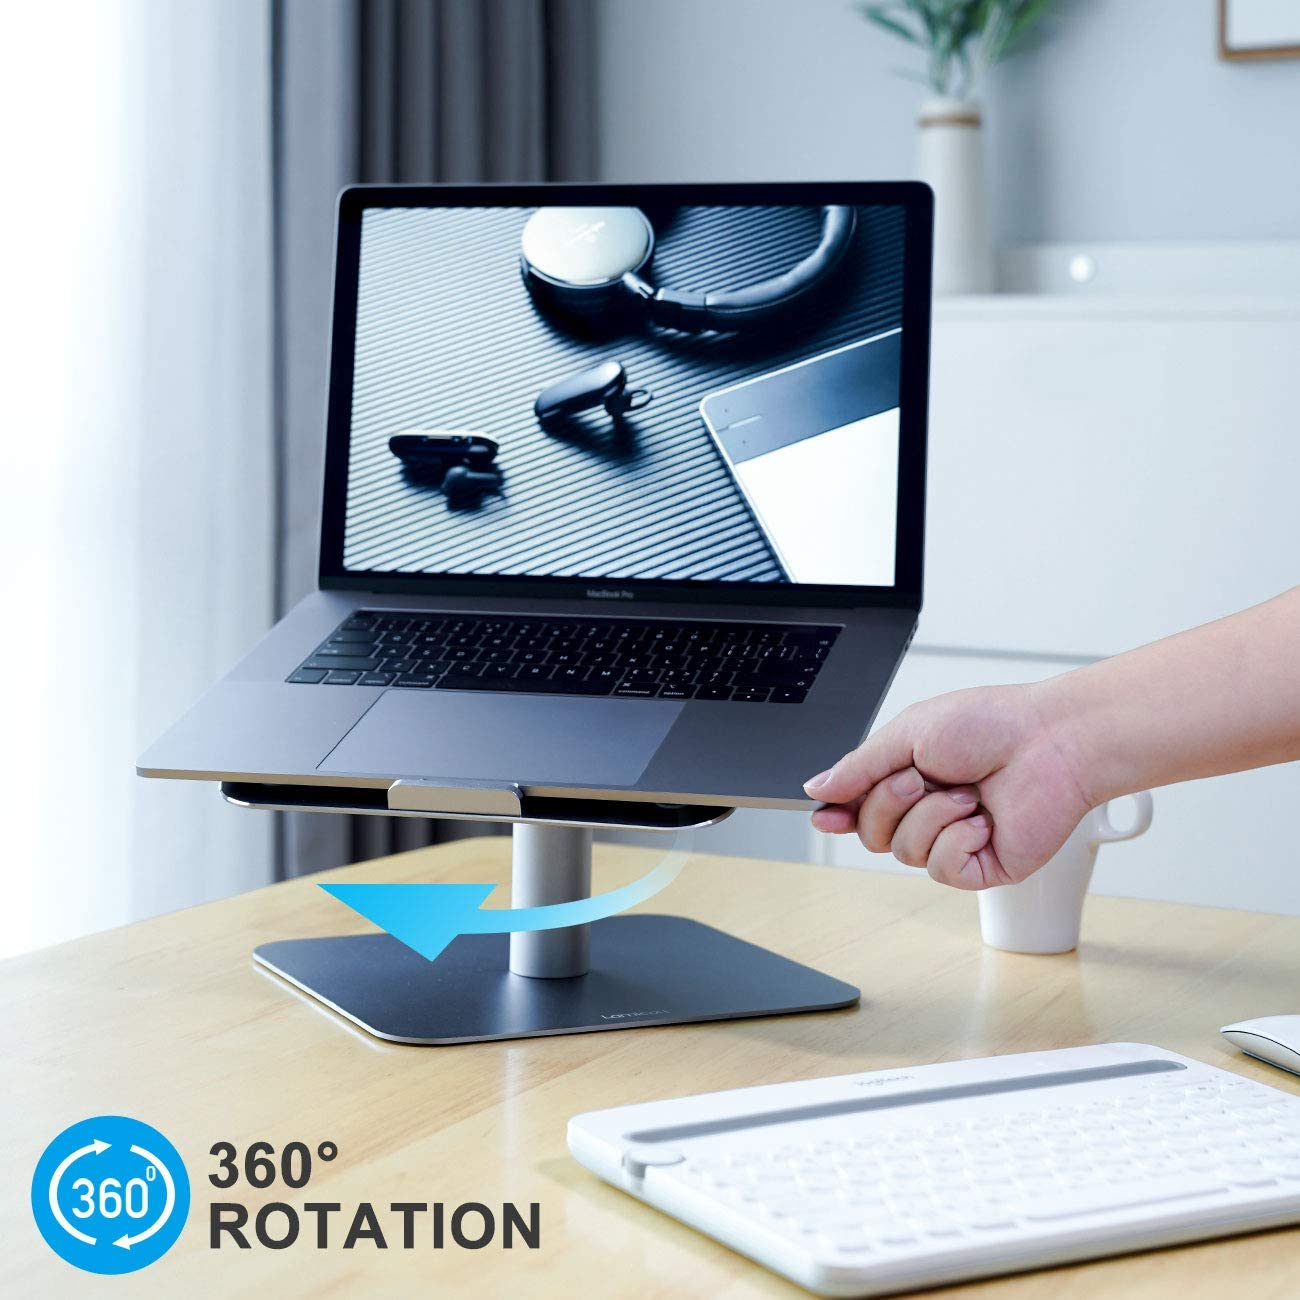 Air Dell XPS 10-17 Adjustable Laptop Stand Mac HP Pro Lamicall Laptop Riser : Multi-Angle Height Adjustable 360/°Rotation Computer Notebook Stand Desktop Holder Compatible with Apple MacBook